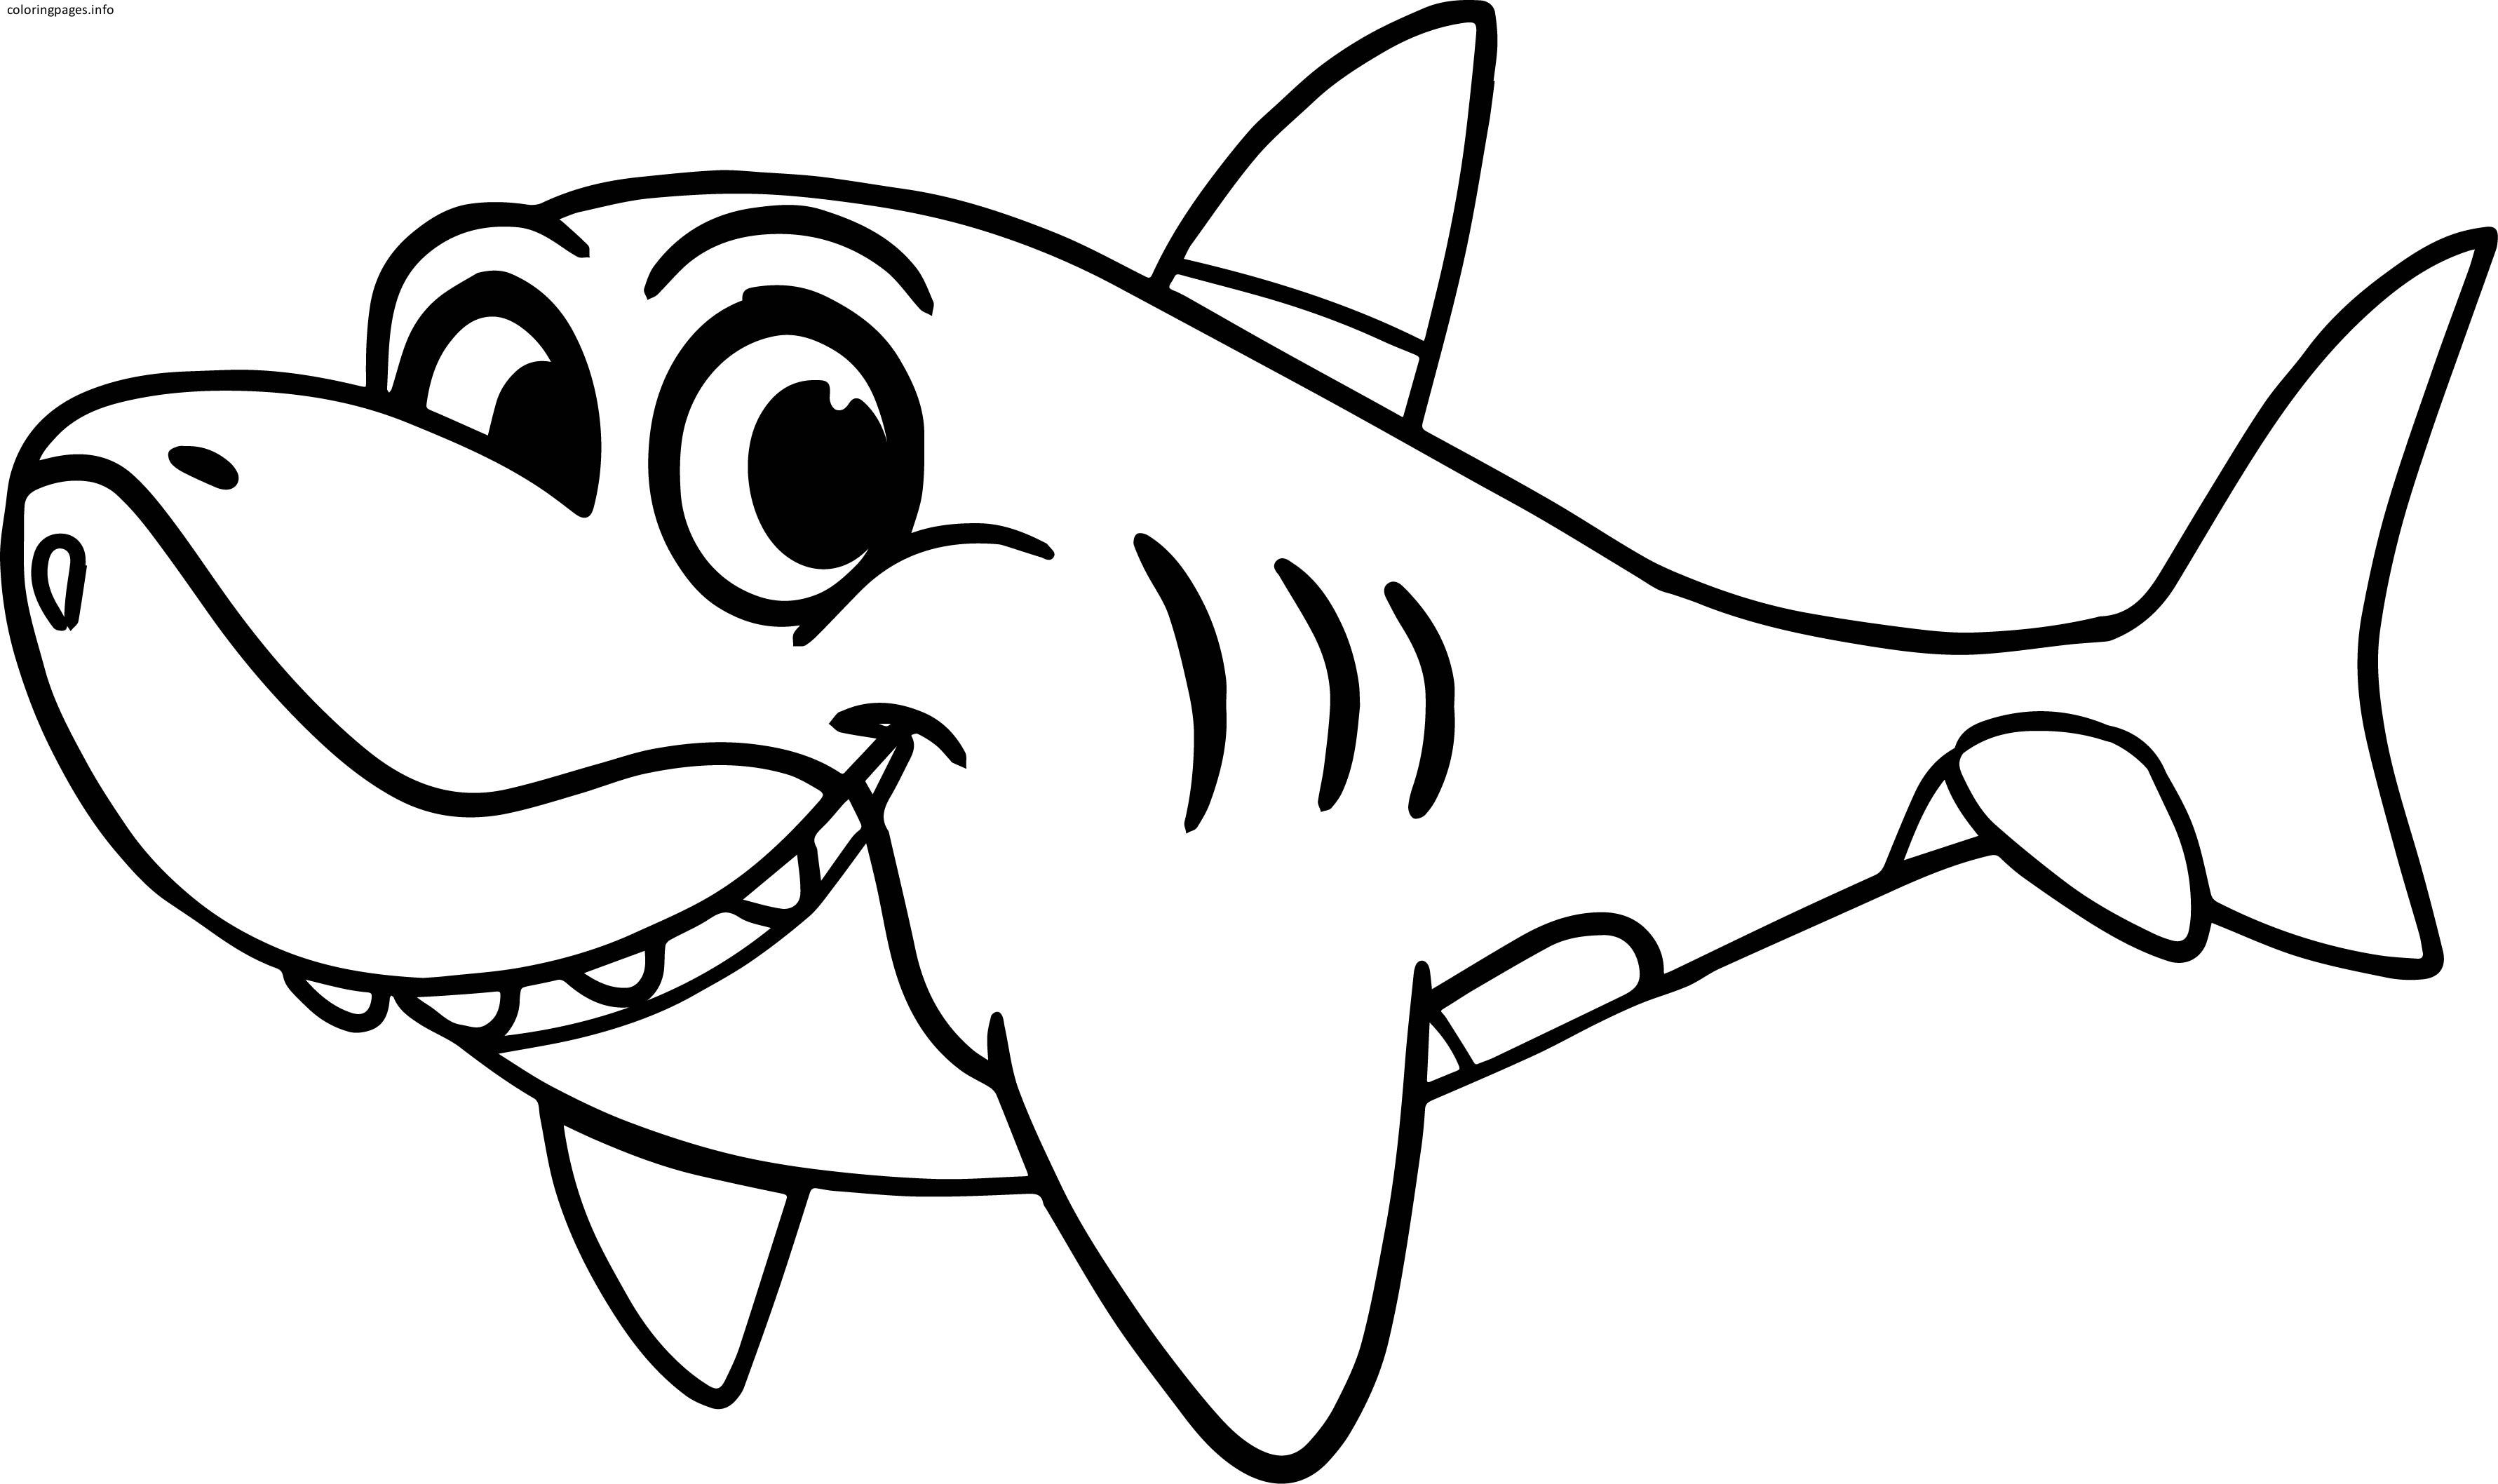 pictures of sharks to colour in free shark coloring pages colour to of pictures sharks in